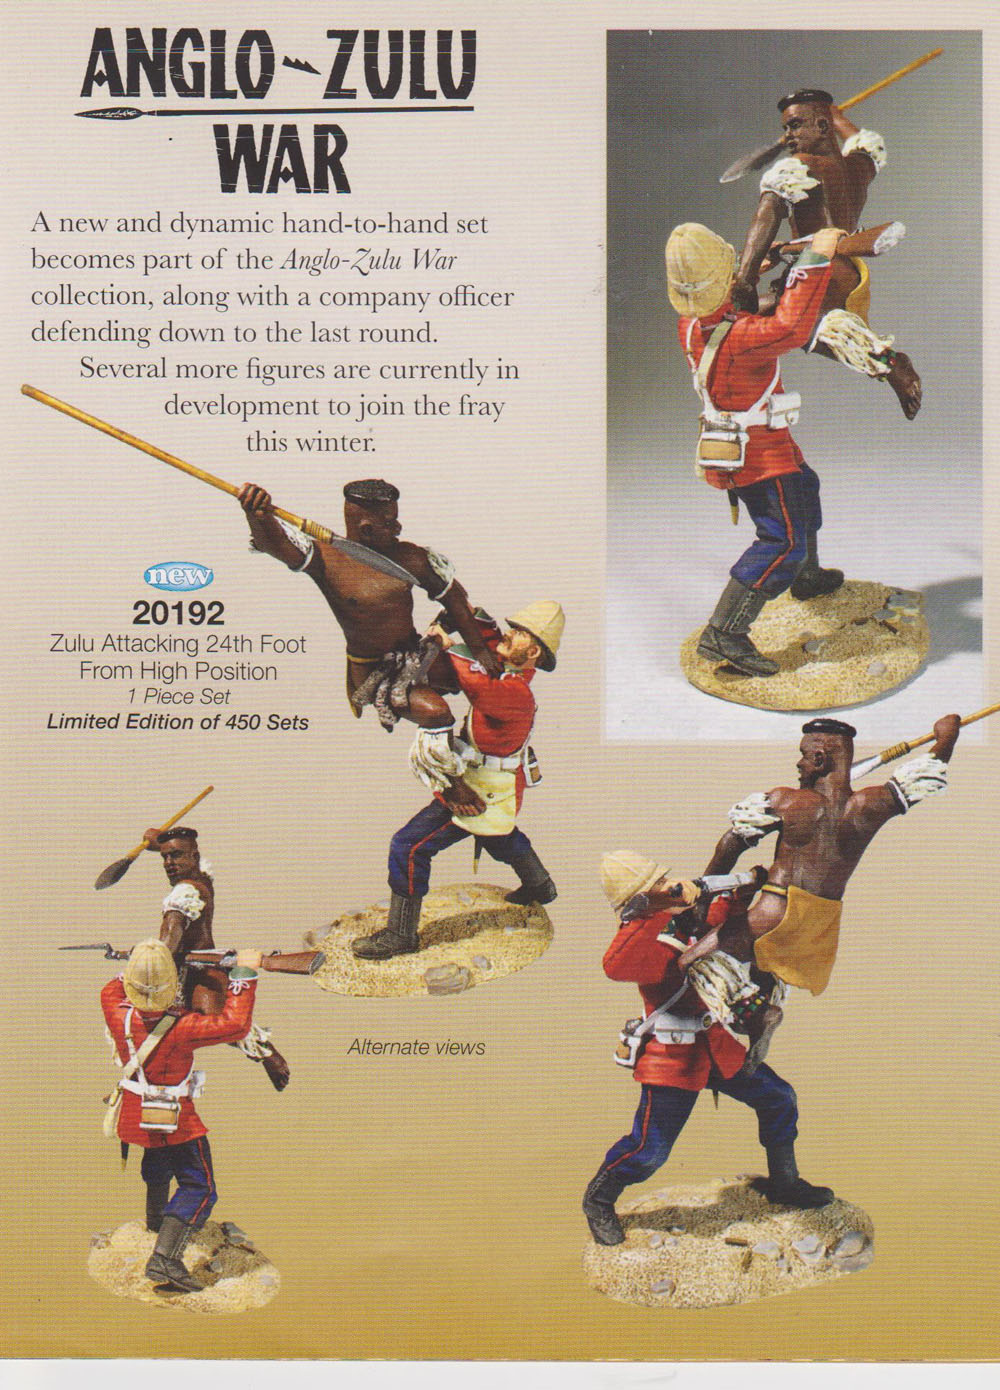 "A new and dynamic one piece set featuring a Zulu warrior and 24th Foot infantryman in hand to hand combat.<br><br><span class=""yui-non"">Limited edition - 450 Sets.</span><br><br><span class=""yui-non"">Late 2017 release</span><br><br><span class=""yui-non"">Matte finish</span><br><br><span class=""yui-non"">1/30 produces a figure that is 56/58mm.</span><br>"